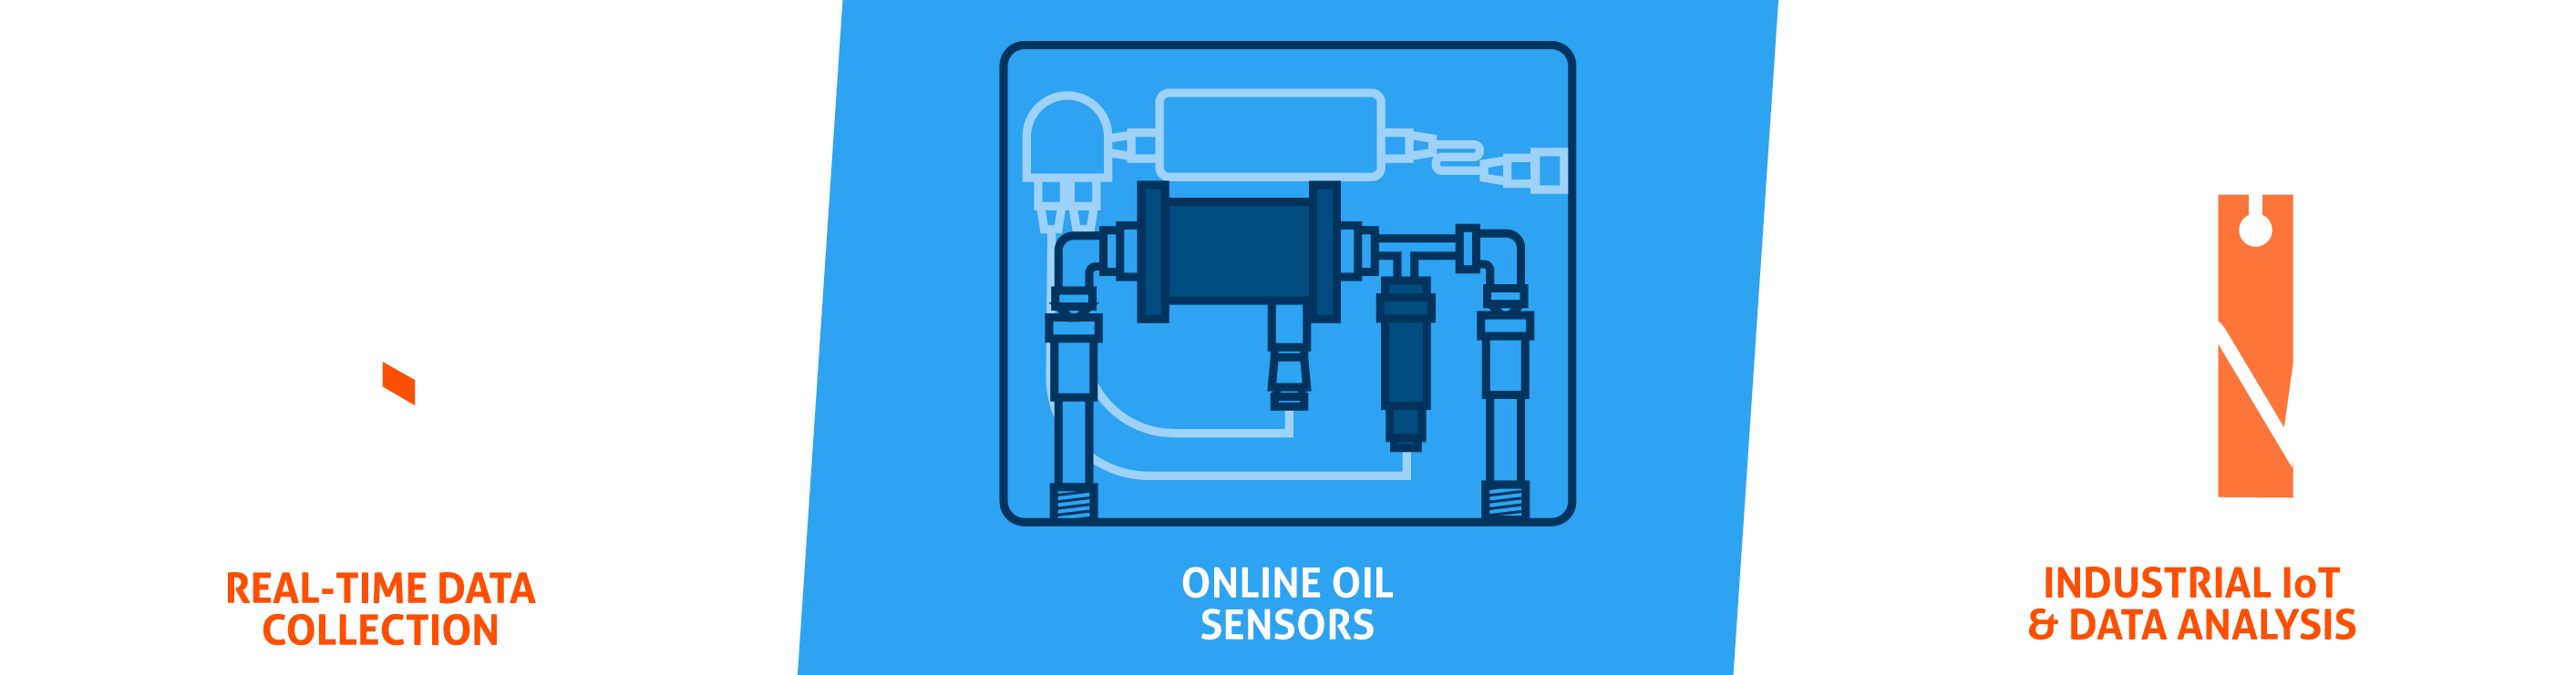 Shows how Poseidon Sensors collect and analyze data from trucks and heavy diesel engines.